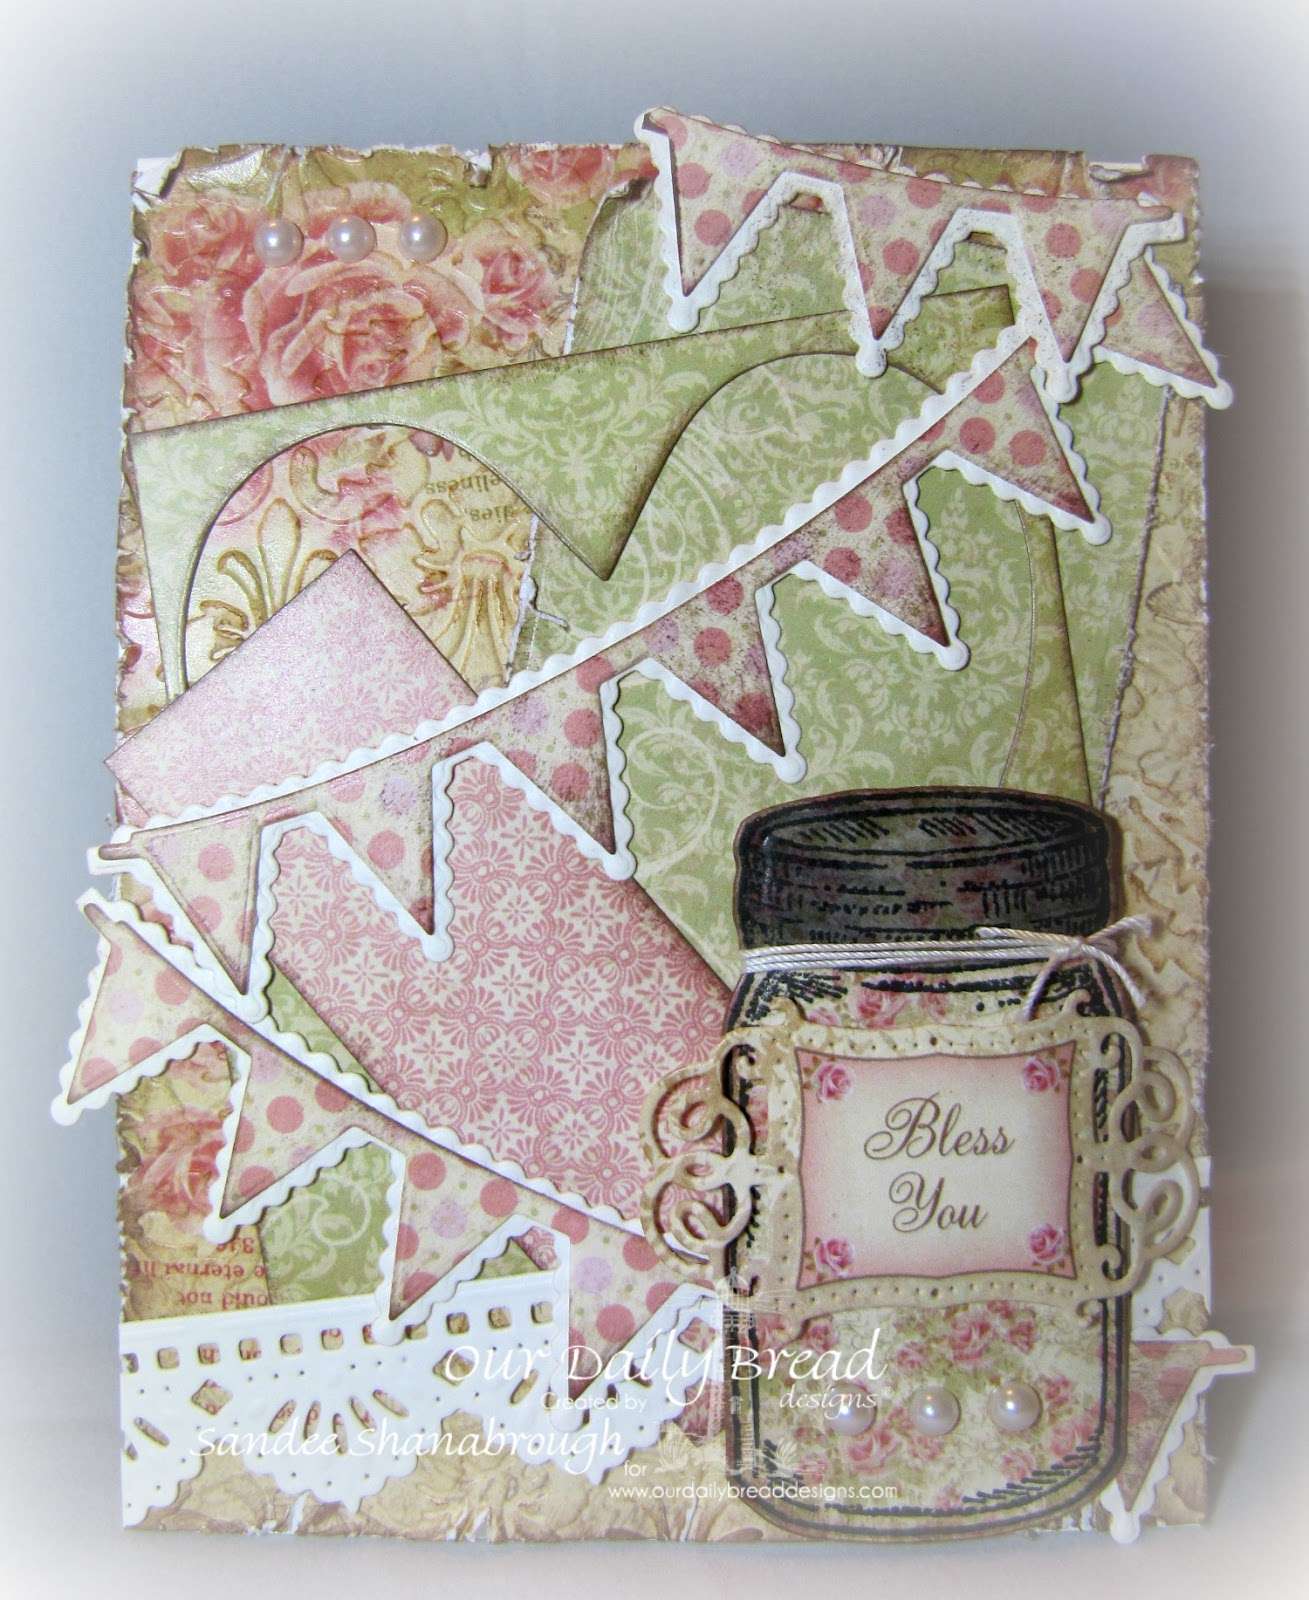 Stamps - Our Daily Bread Designs Blue Ribbon Winner, ODBD Blushing Rose Paper Collection,ODBD Custom Canning Jars Die,ODBD Custom Beautiful Borders Dies,ODBD Custom Ornate Hearts Die,ODBD Custom Pennant Row Die,ODBD Custom Vintage Flourish Pattern Die